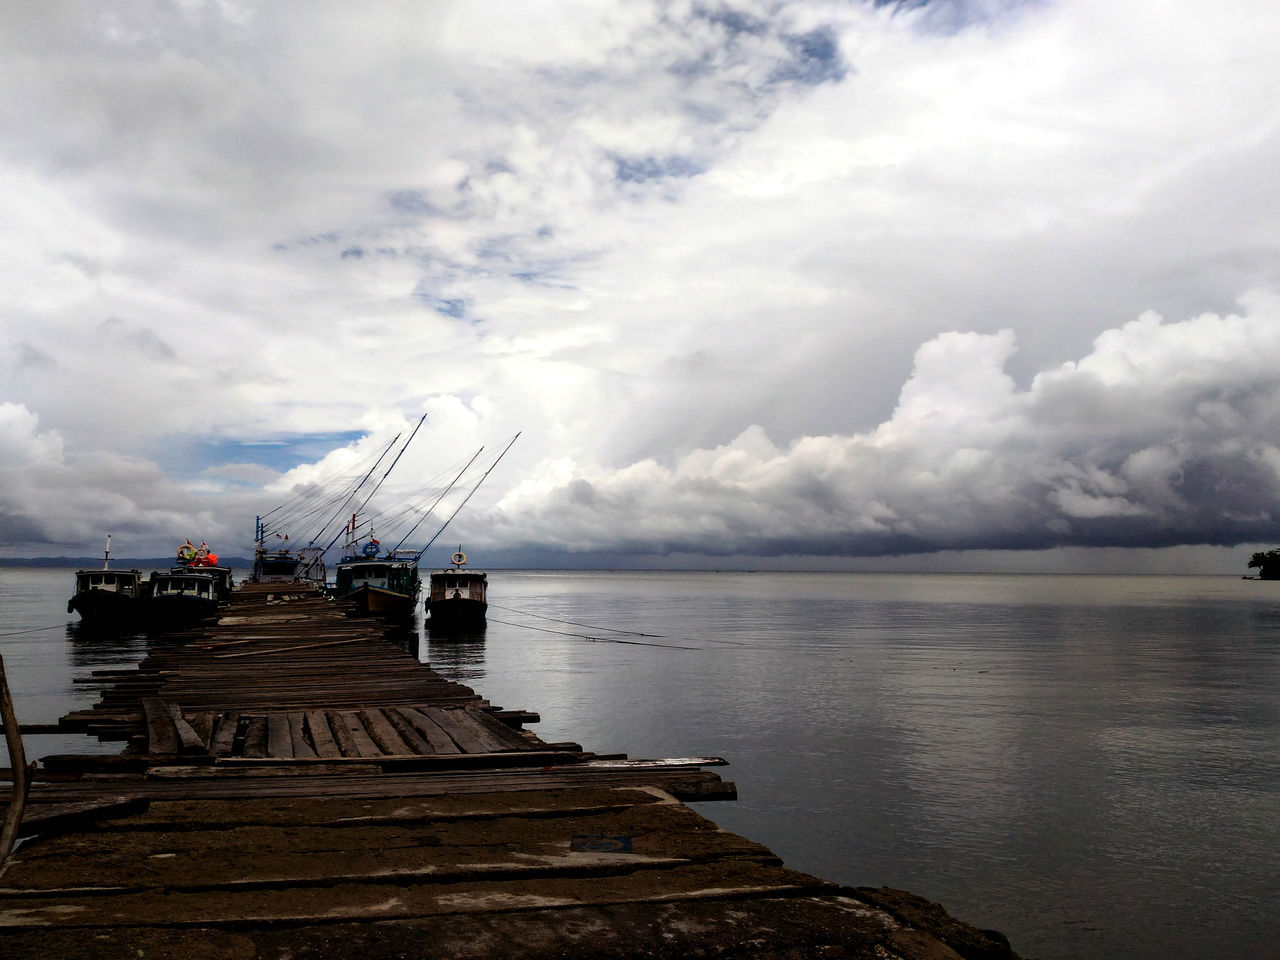 water, sky, cloud - sky, sea, nautical vessel, nature, transportation, pier, no people, scenics, beauty in nature, tranquility, jetty, day, outdoors, horizon over water, harbor